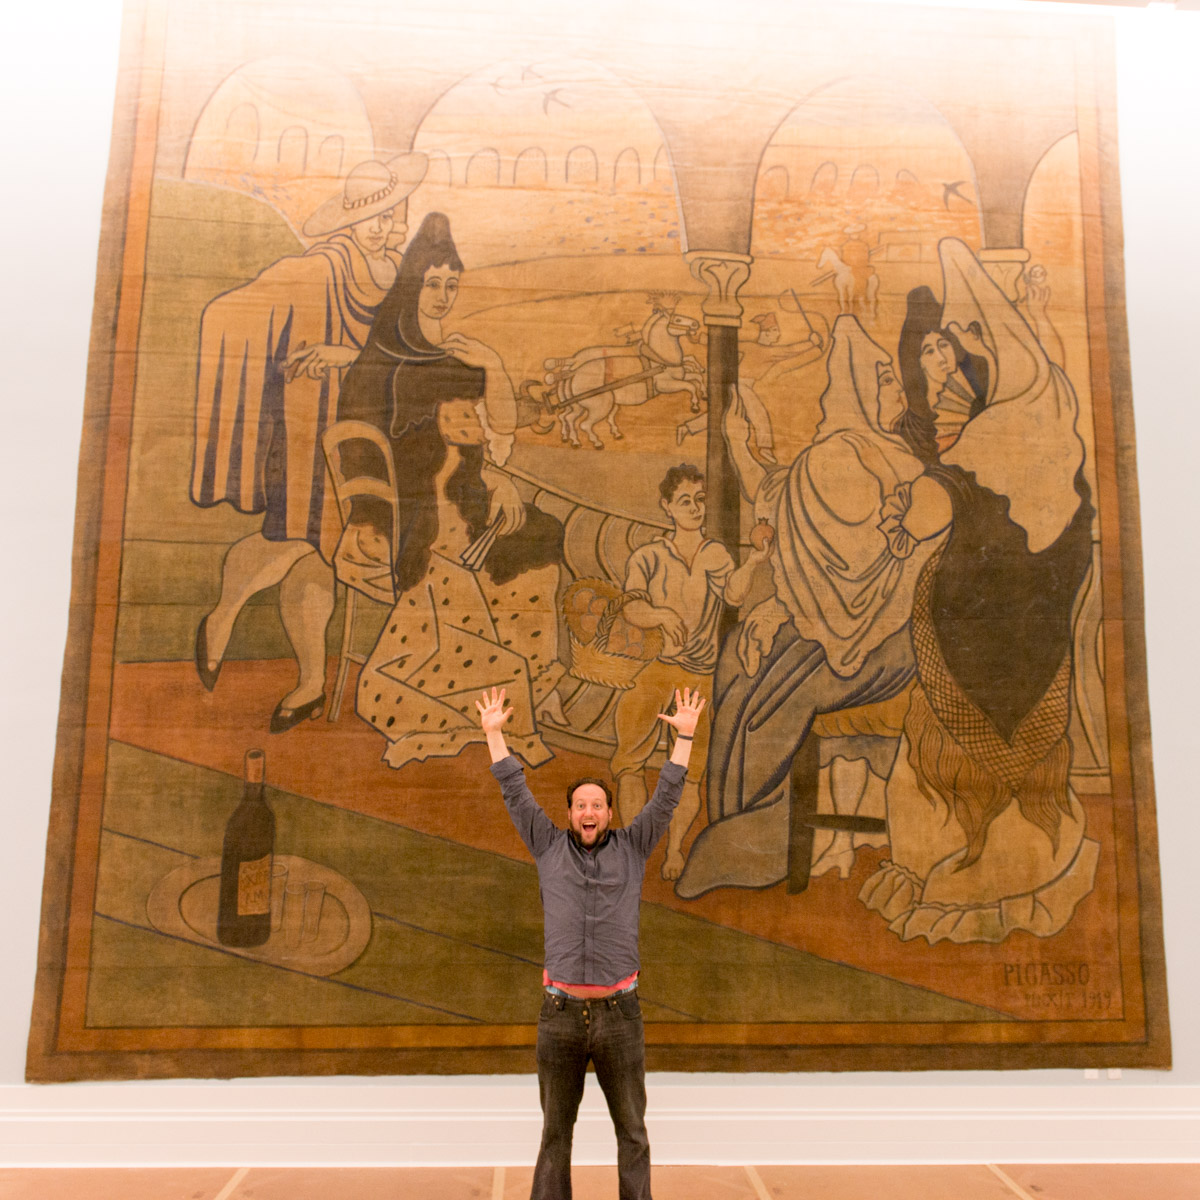 Jason gardner in front of the Le Tricorne curtain by picasso